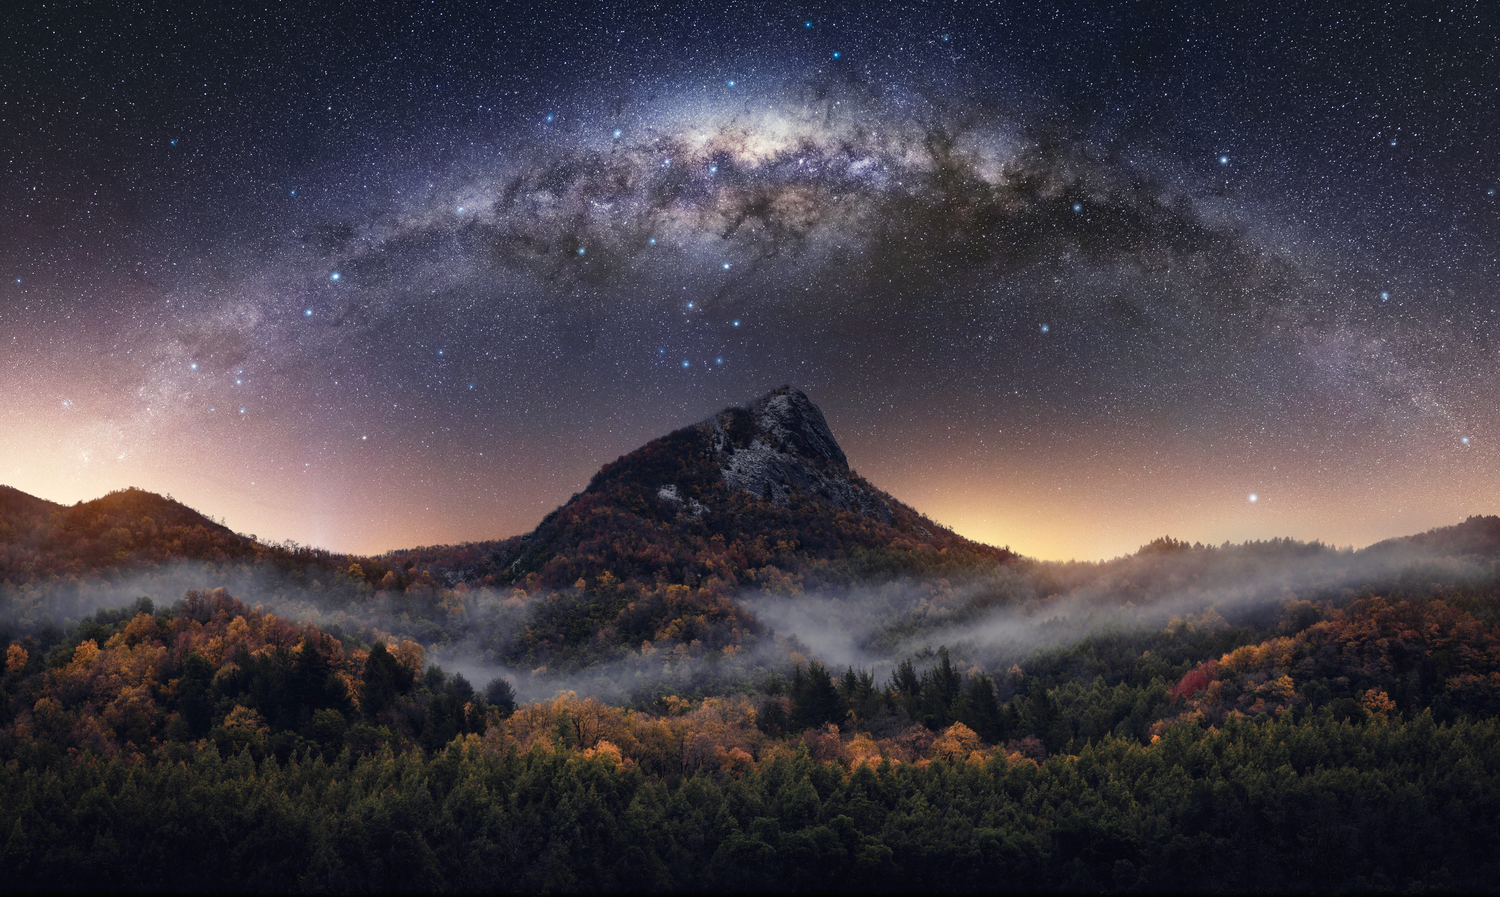 Milky Way Season ! by Francisco Mendez